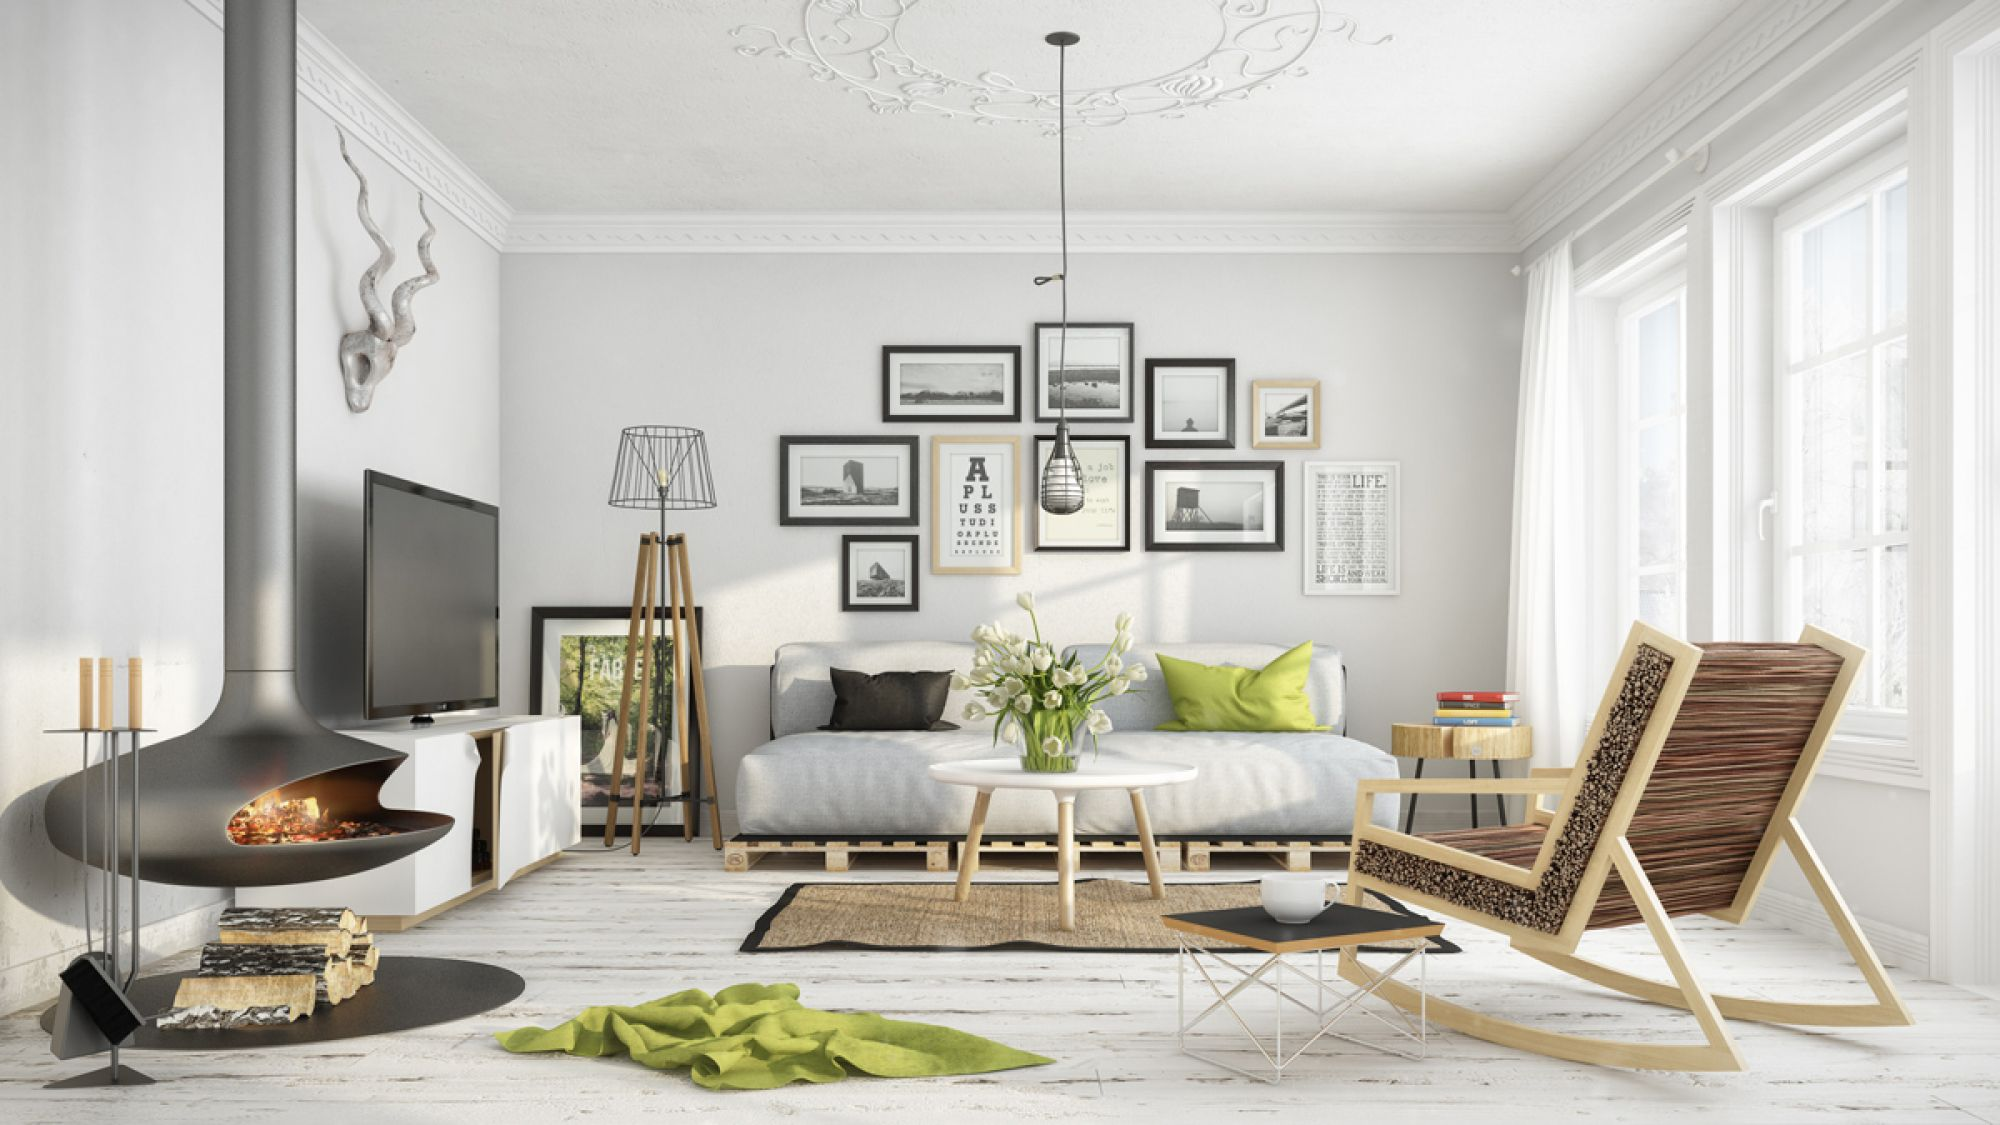 GUIDE FOR INTERIOR DESIGN STYLES - Inspirations ...